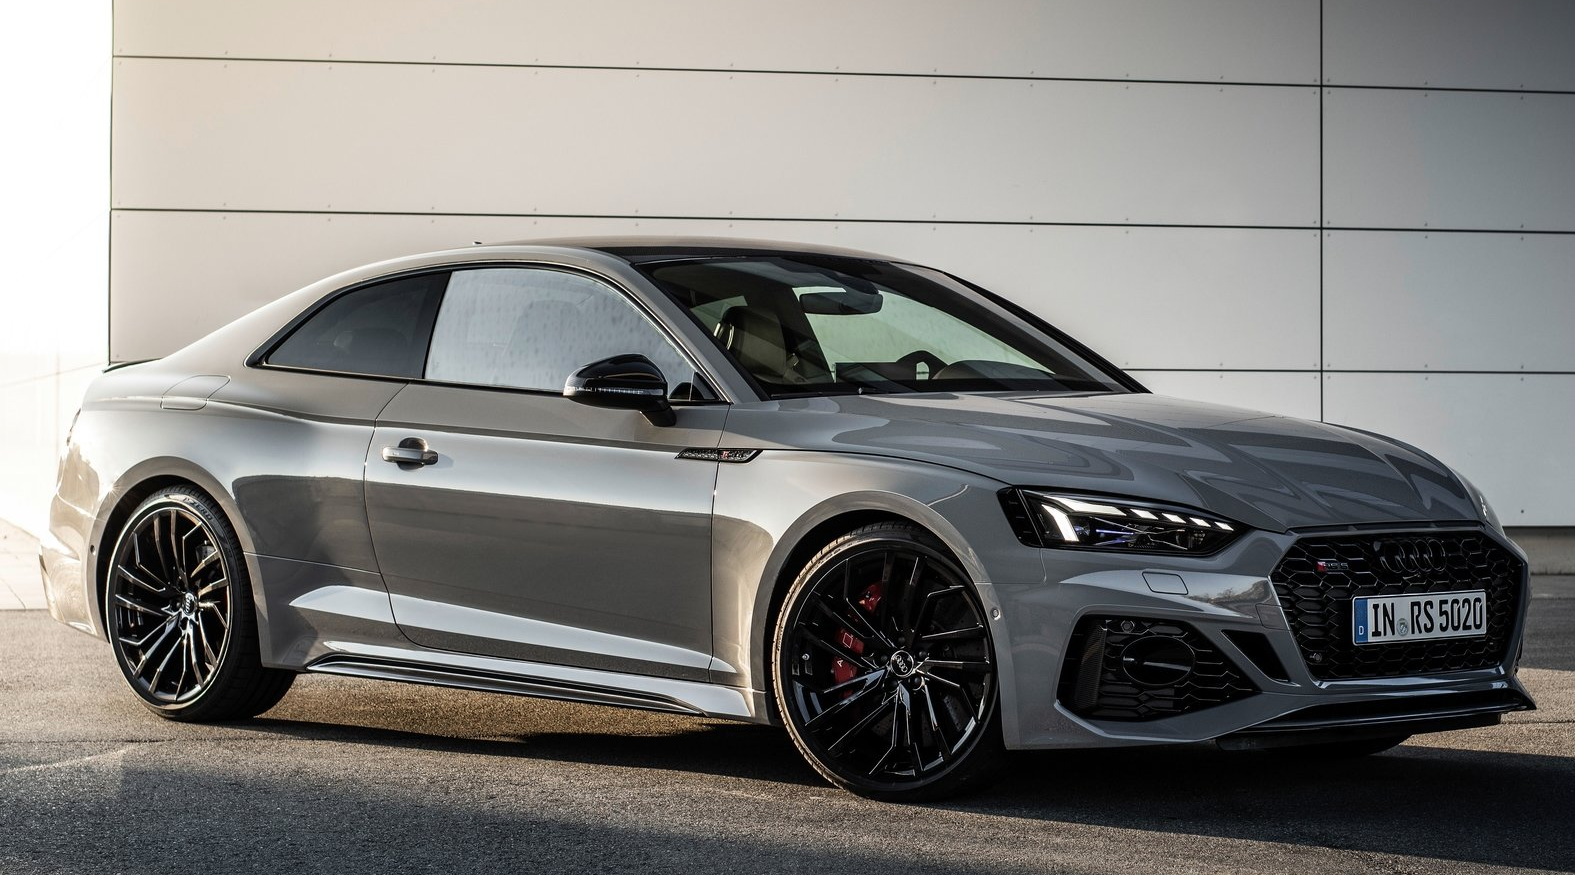 Audi Rs5 Coupe 2020 Rs5 Coupe Audi Rs5 Audi